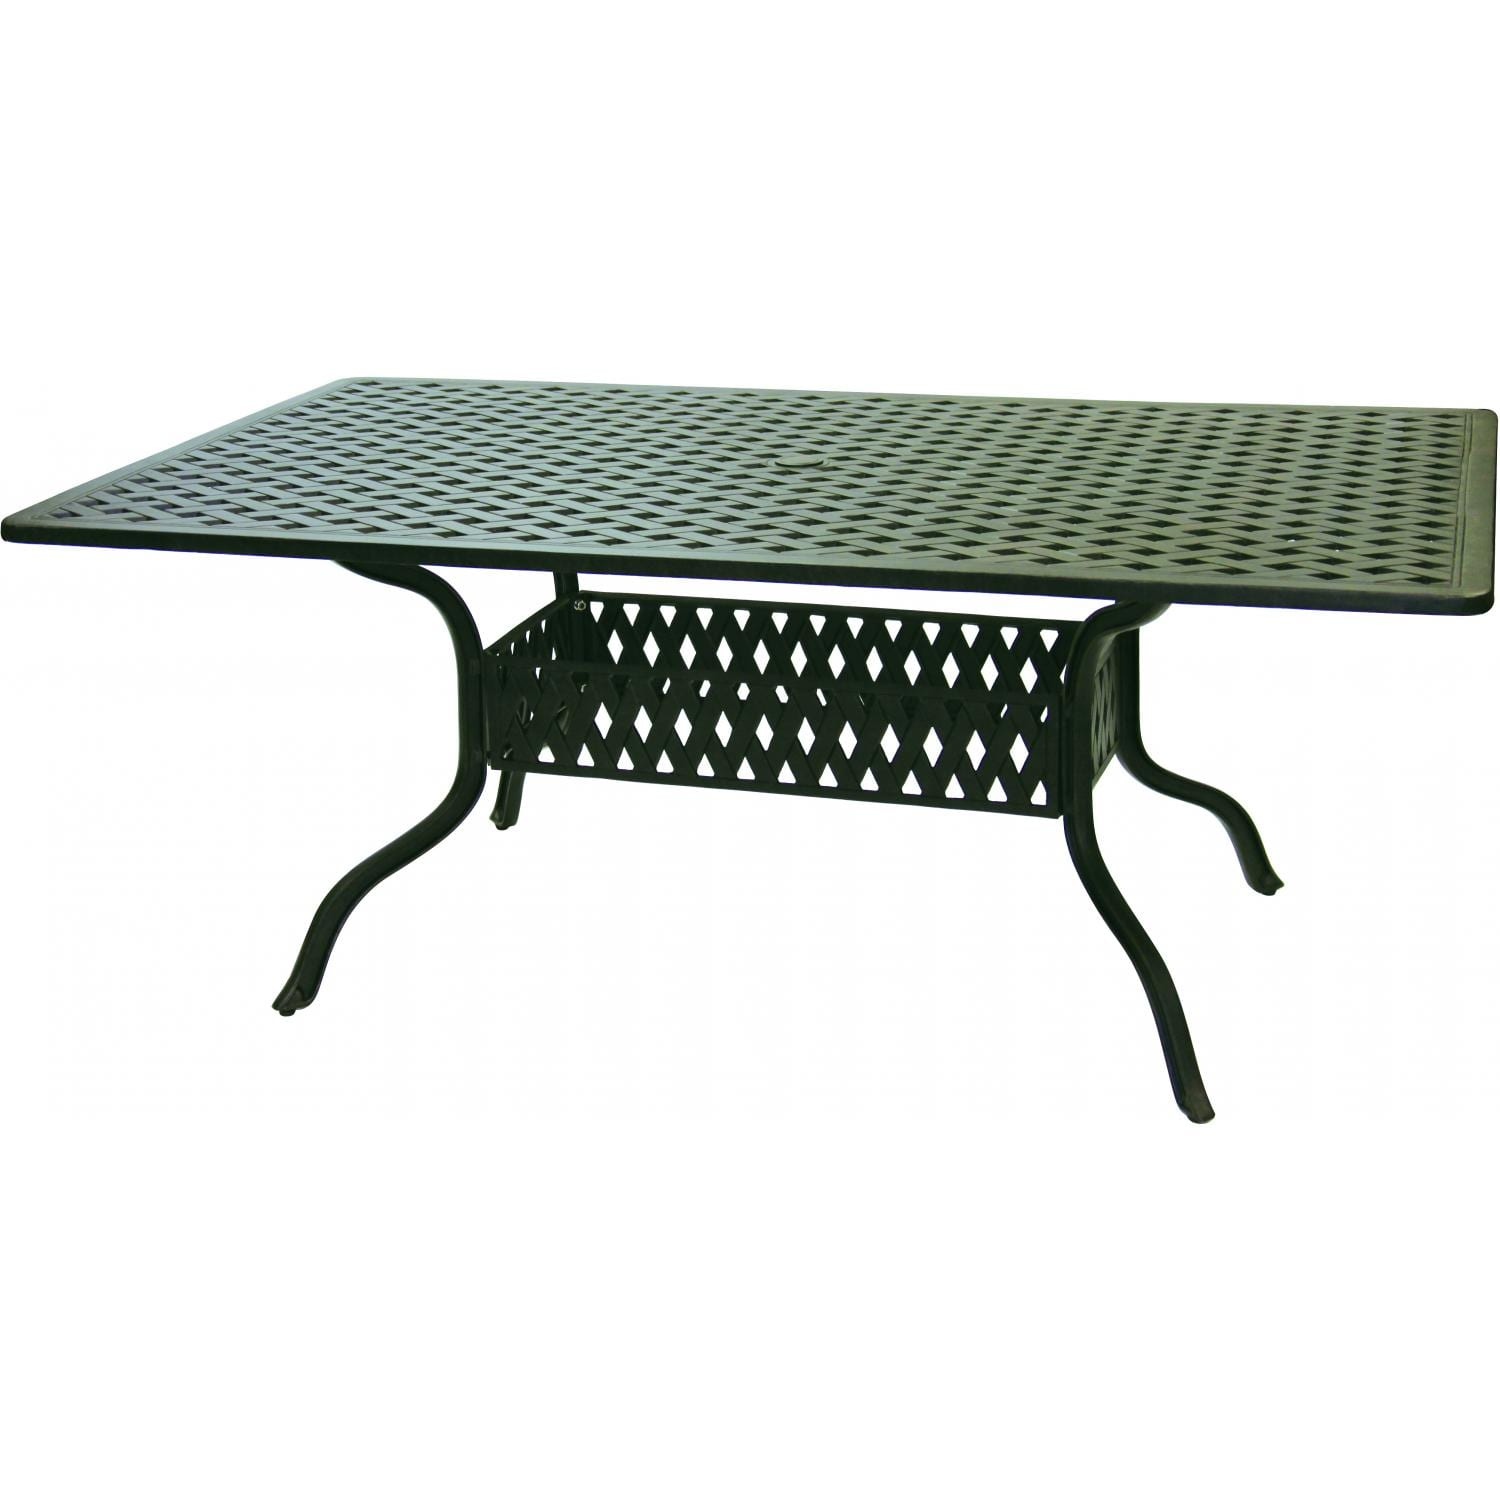 Darlee Series 30 Aluminum Patio Dining Table